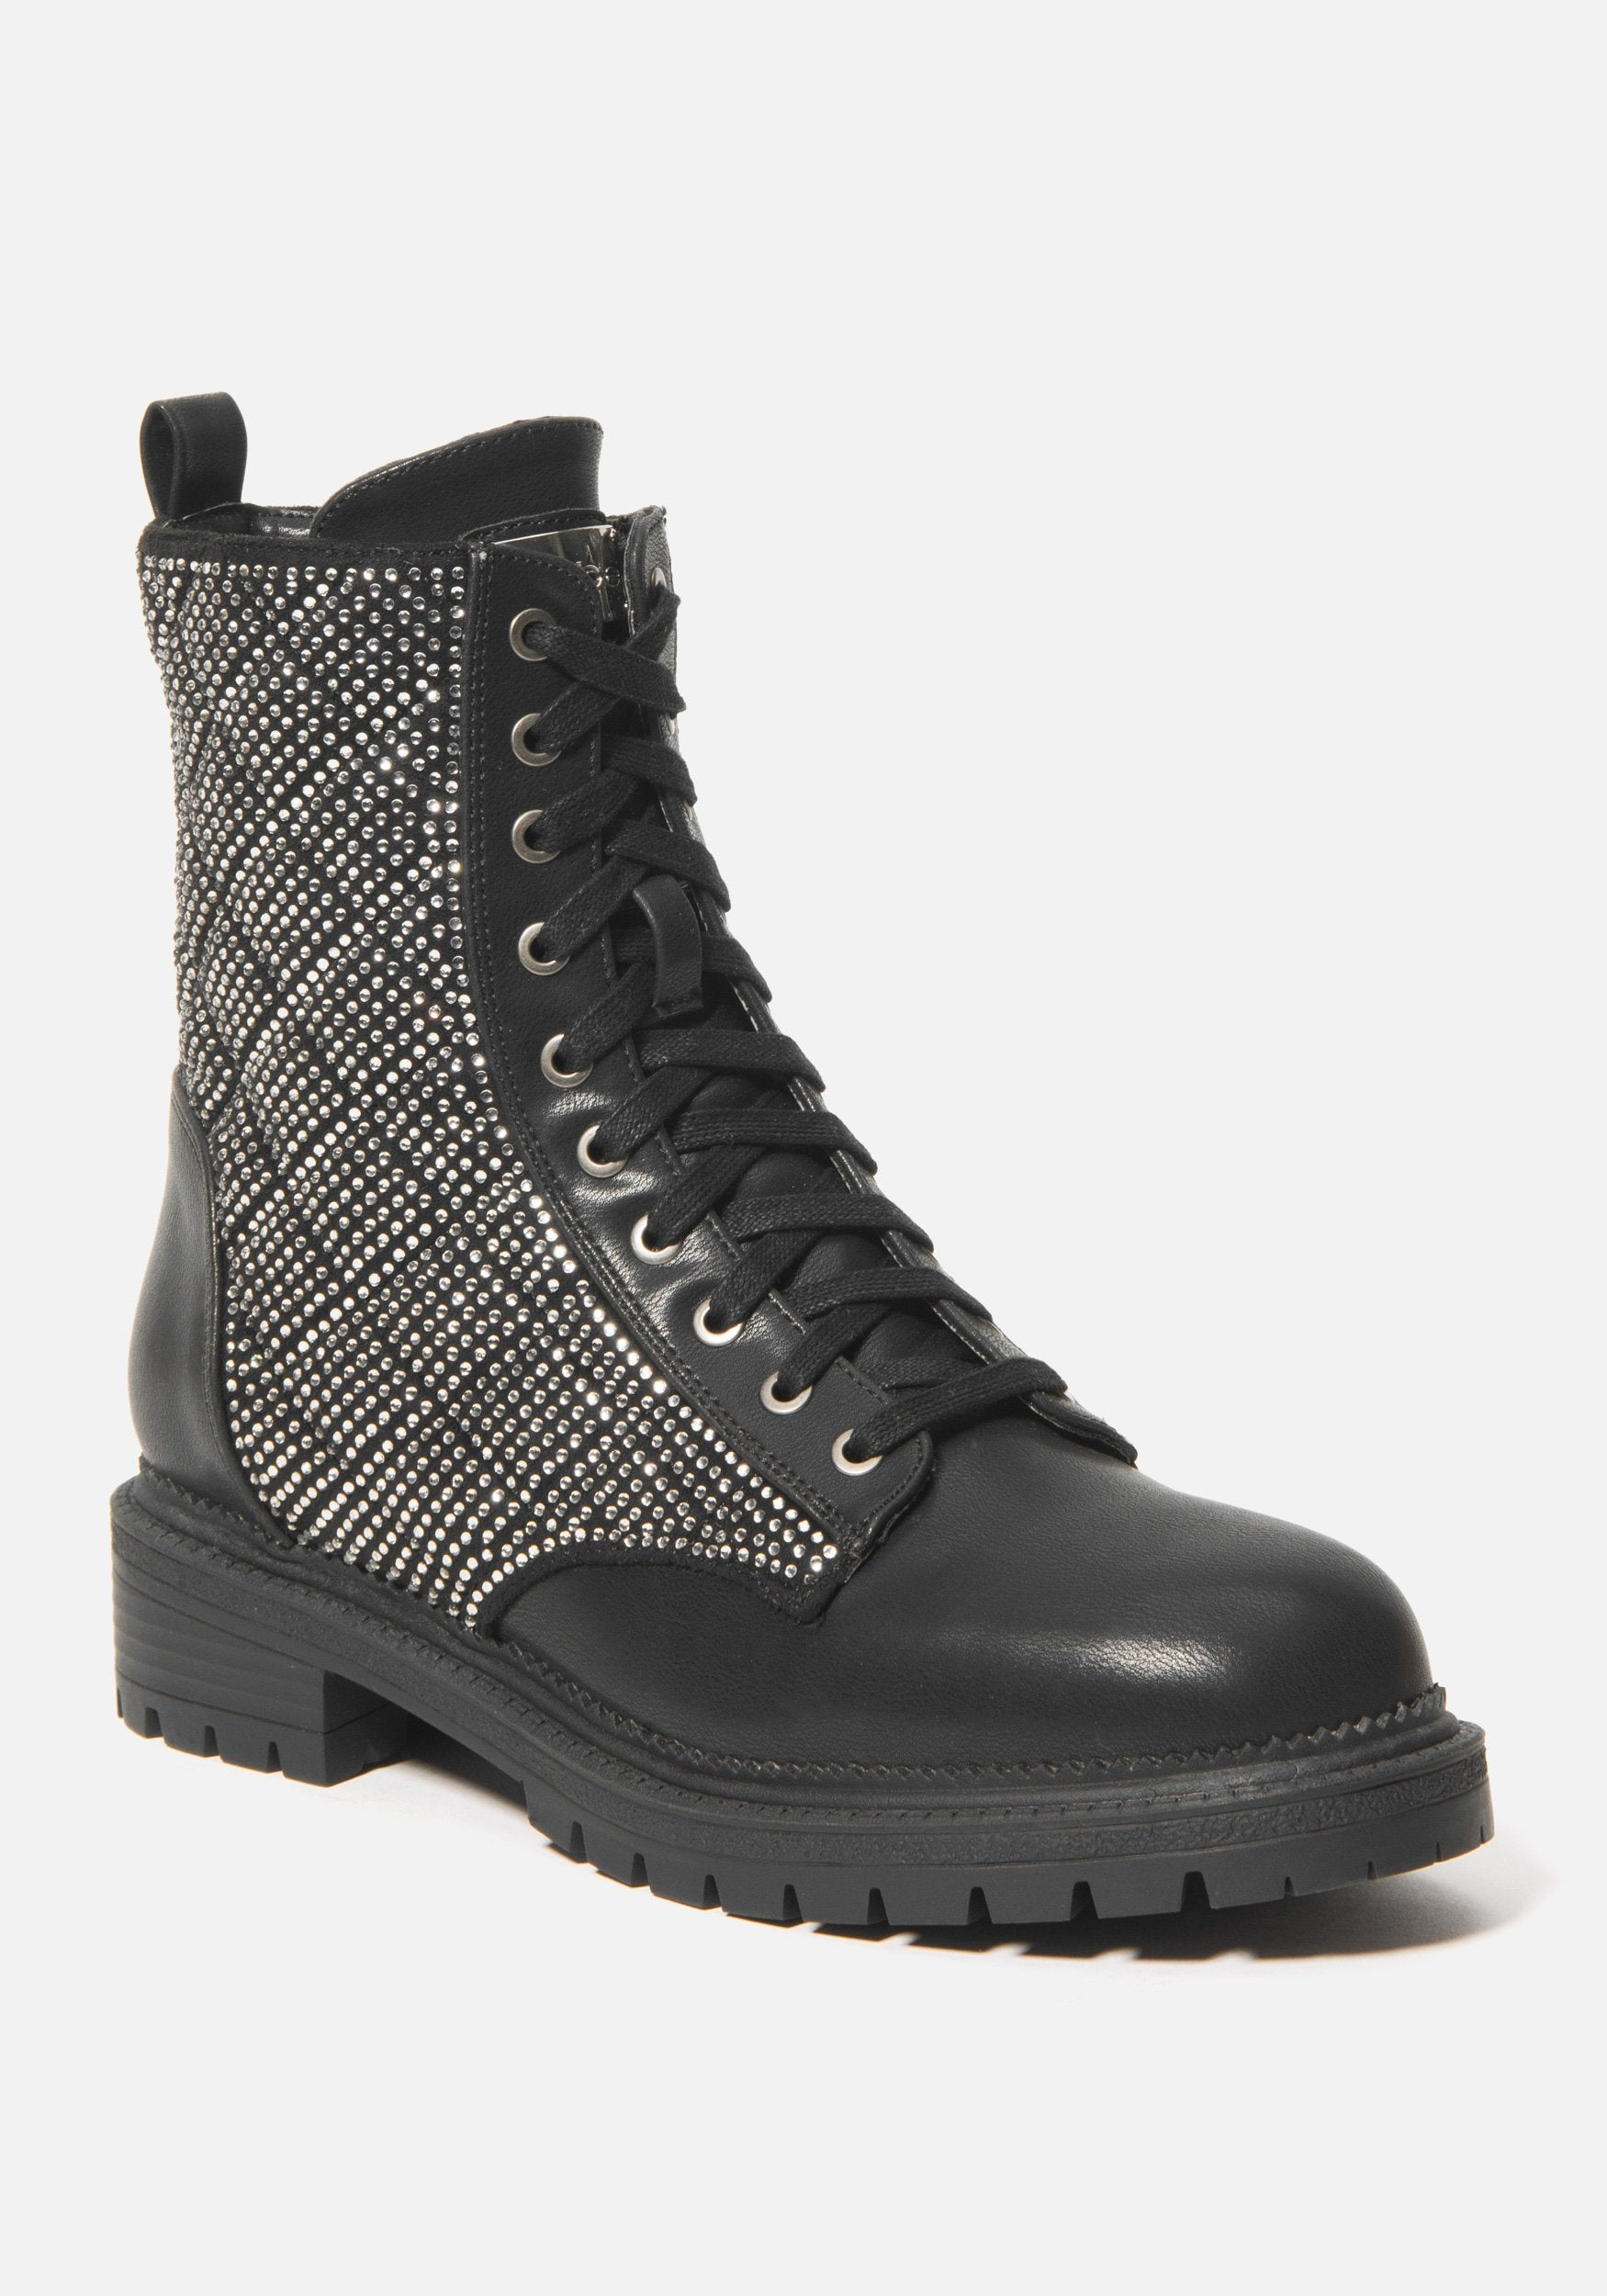 Bebe Women's Dorienne Lace Combat Boots, Size 6 in Black Synthetic